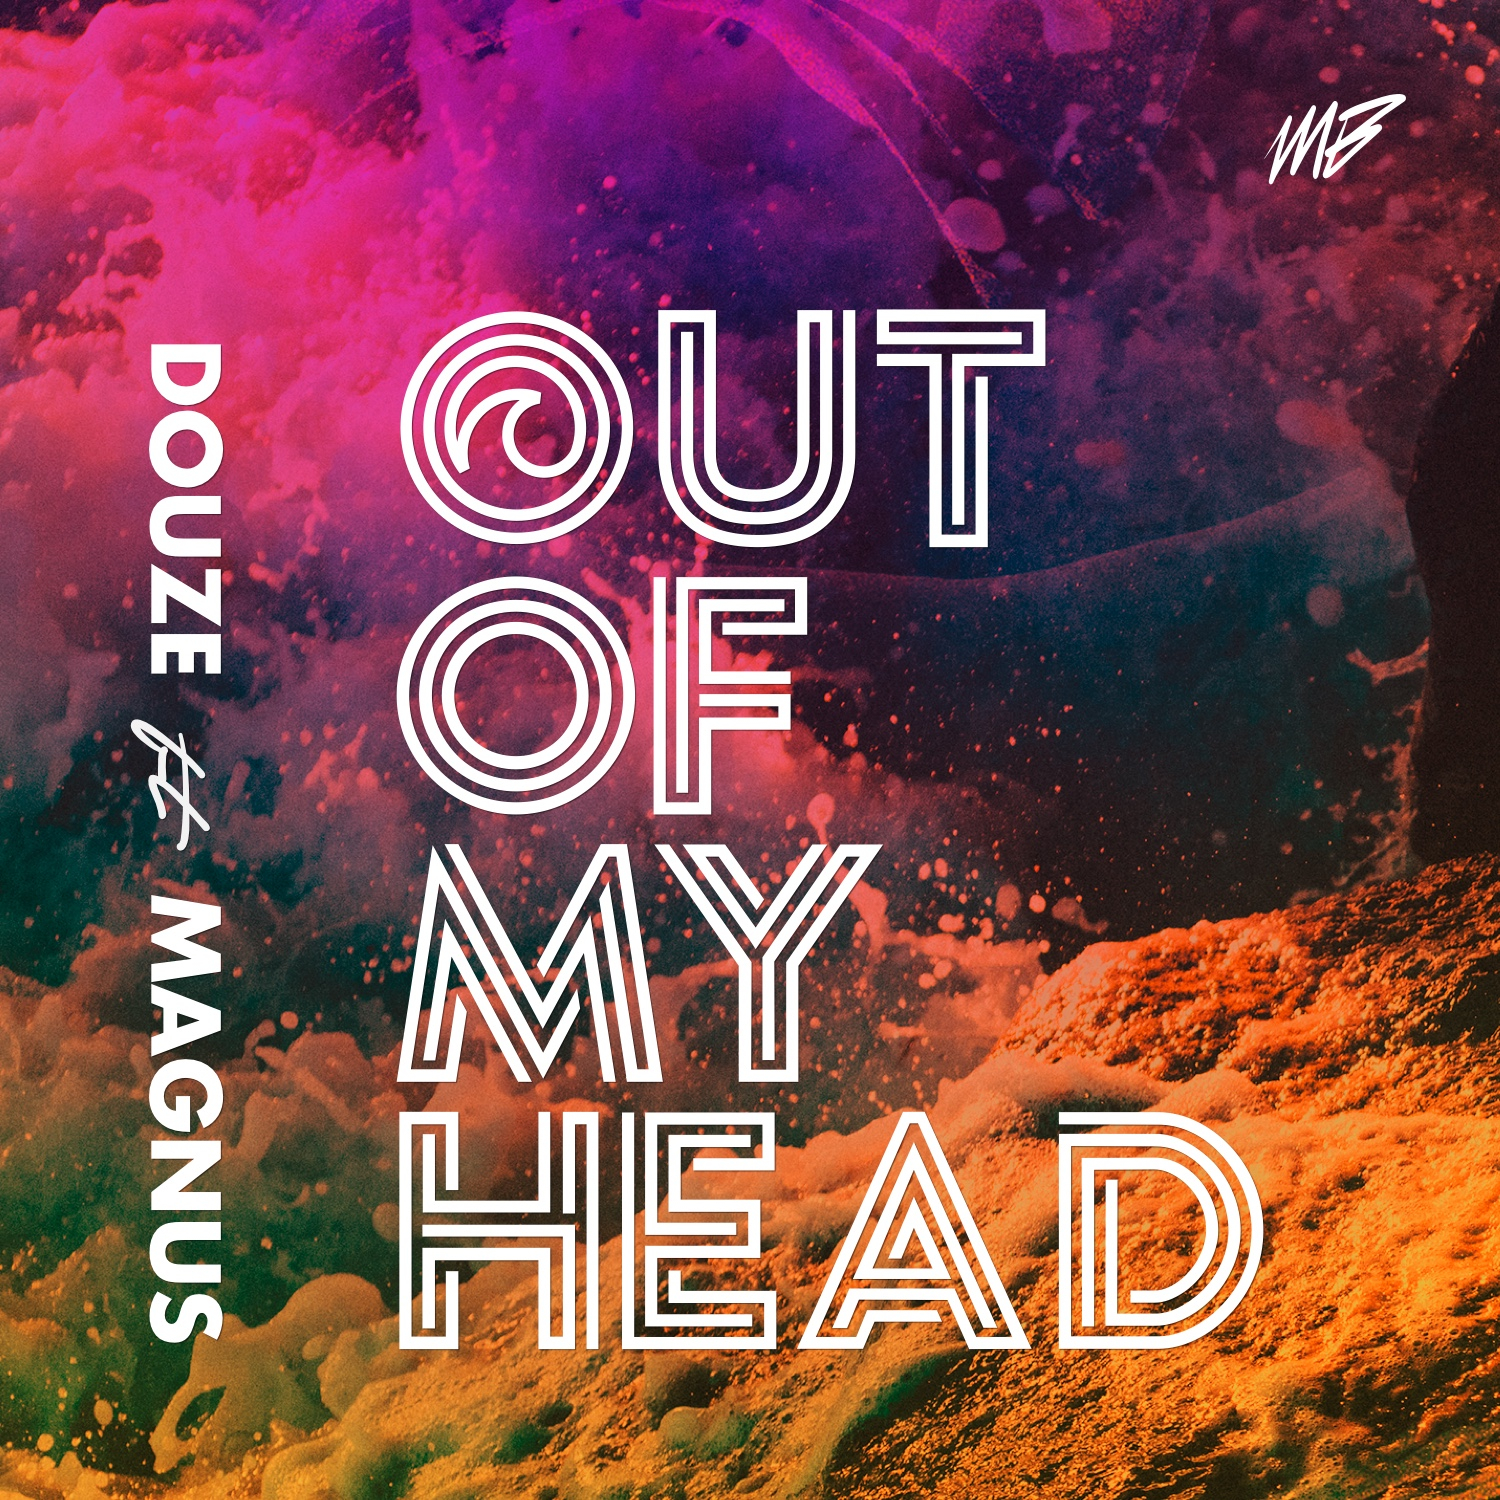 Douze-Magnus-Out-Of-My-Head